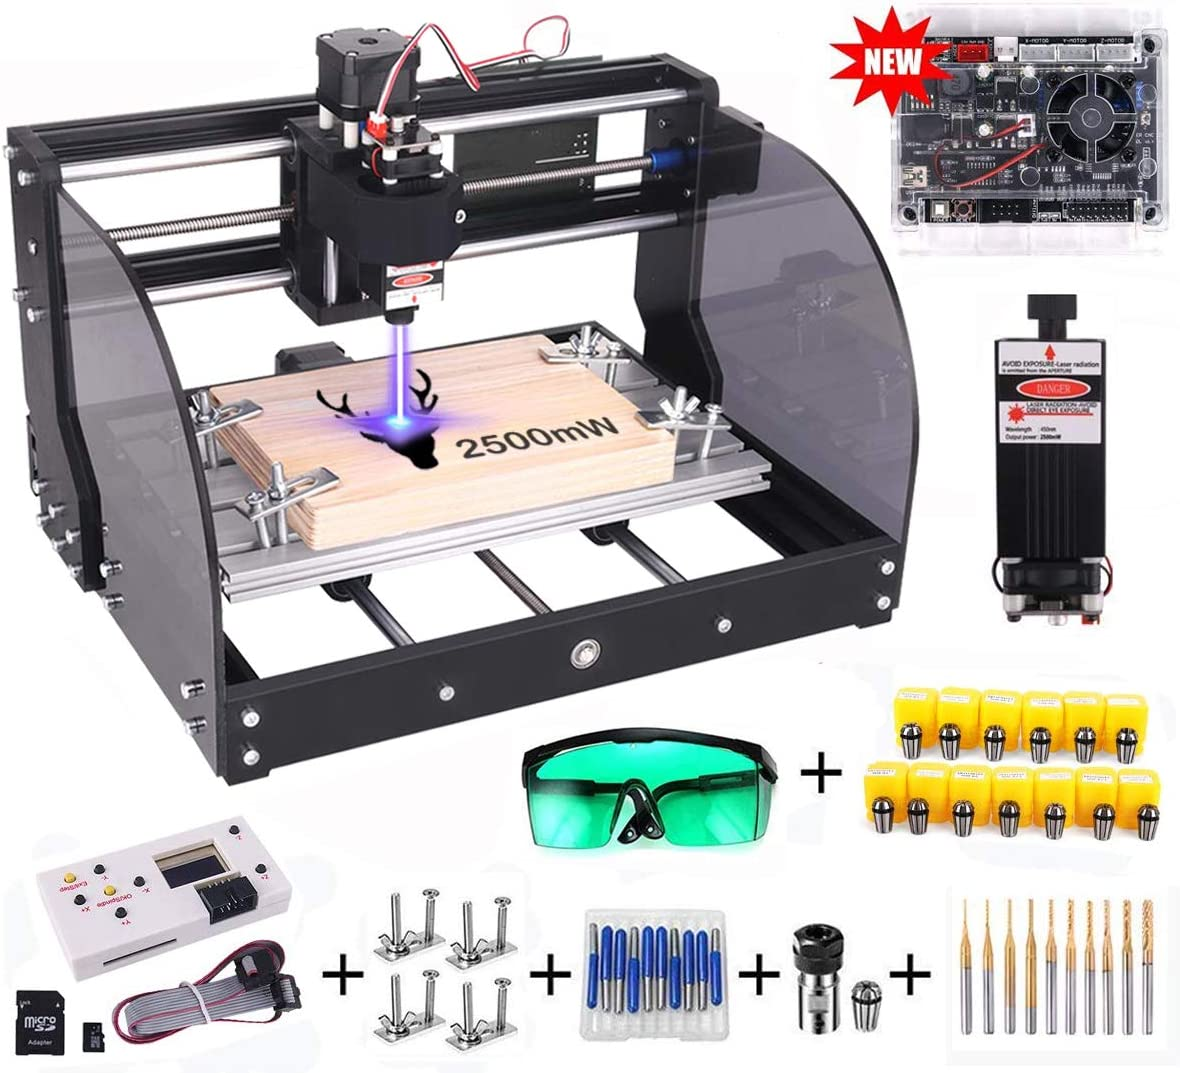 Upgrade Version CNC 3018 Pro-M GRBL Control DIY CNC Router Machine, Yofuly 2500mW Laser Engraver 3 Axis PCB PVC Milling Engraving Machine, with Extension Rod Offline Controller Board 2500mW